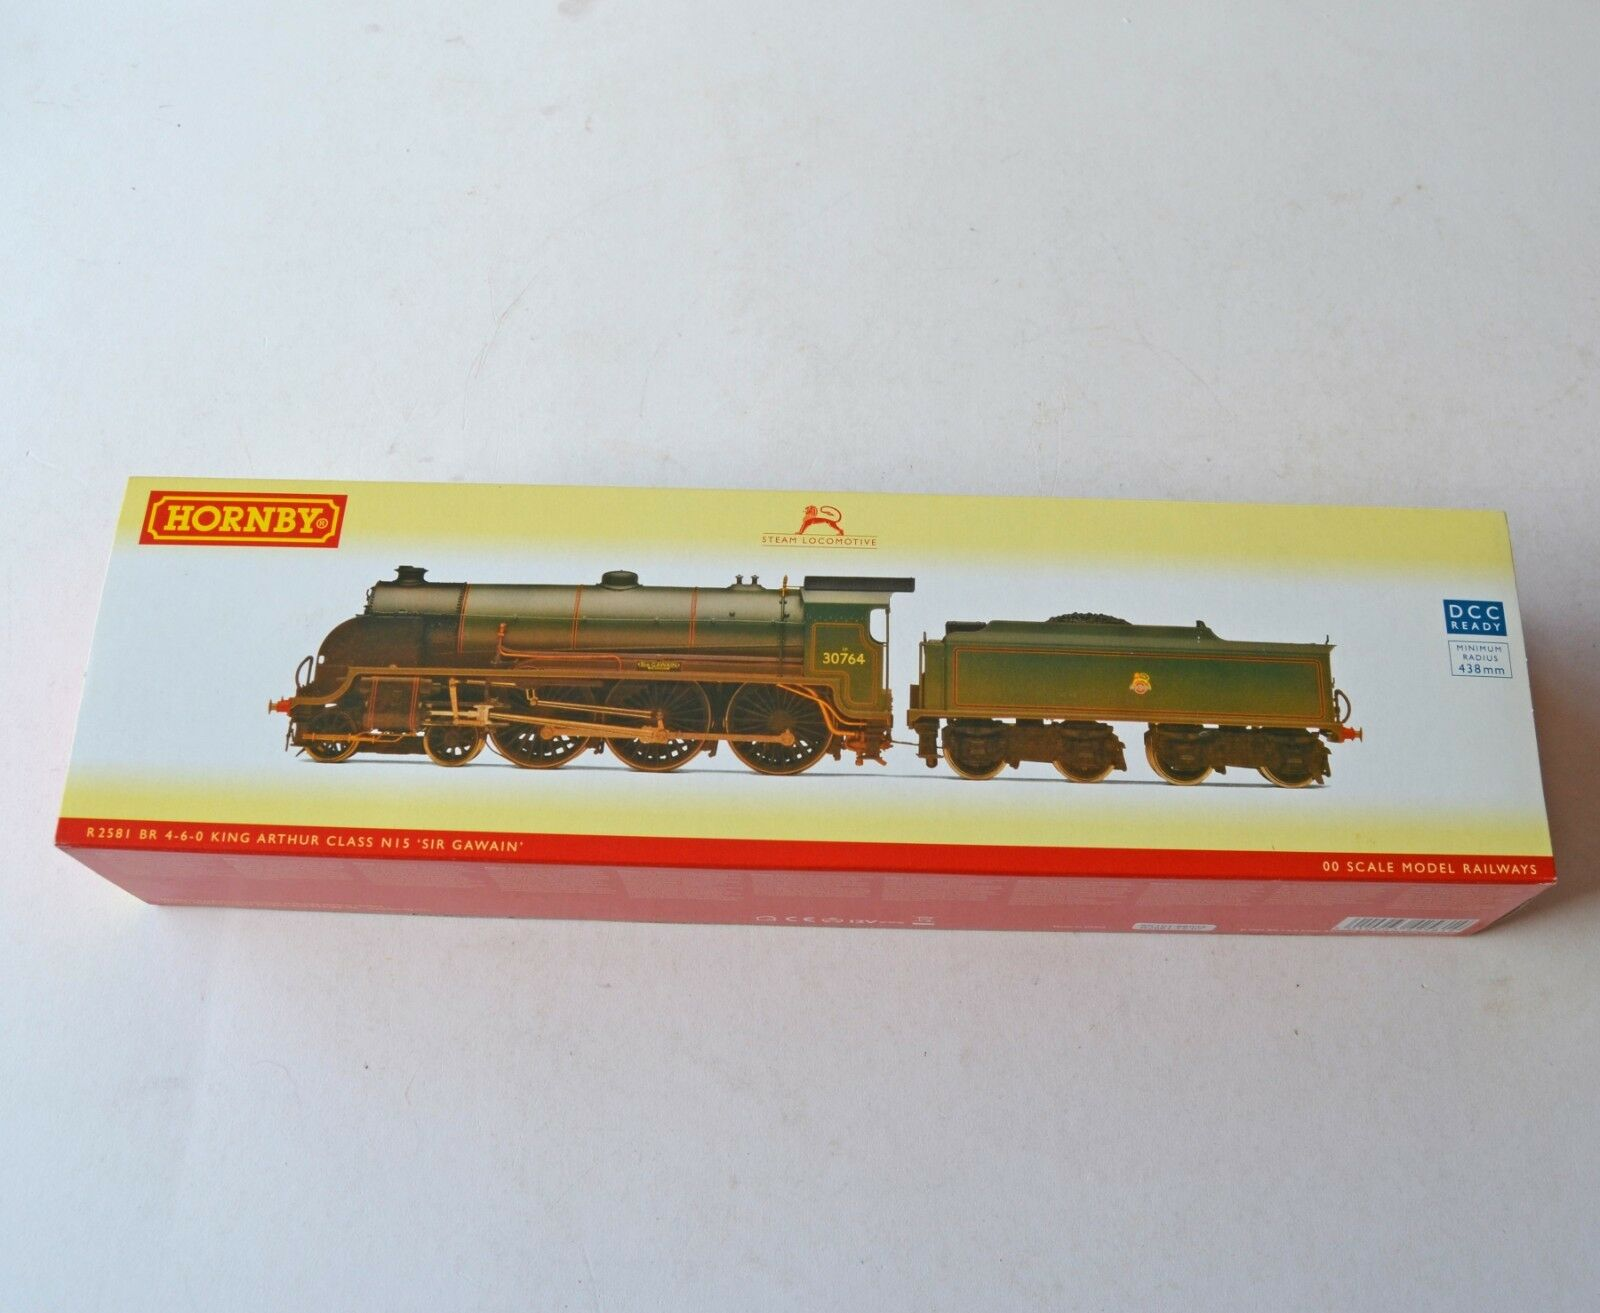 Hornby R 2581 BR Class N15 Steam Loco 30764 Sir Gawain Weatherojo DCC Ready New